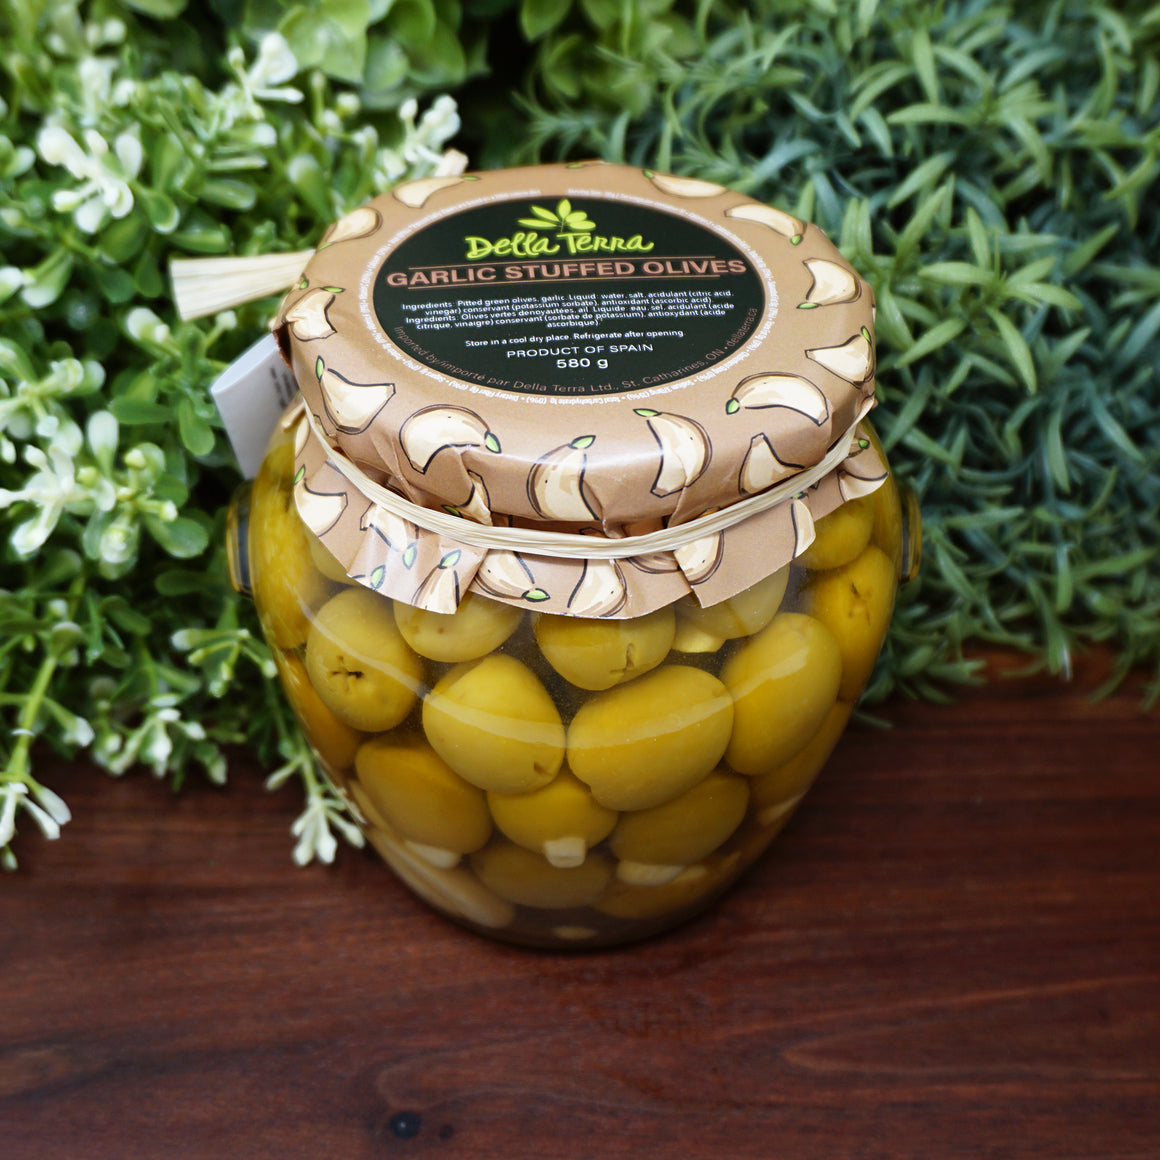 Della Terra Garlic Stuffed Olives